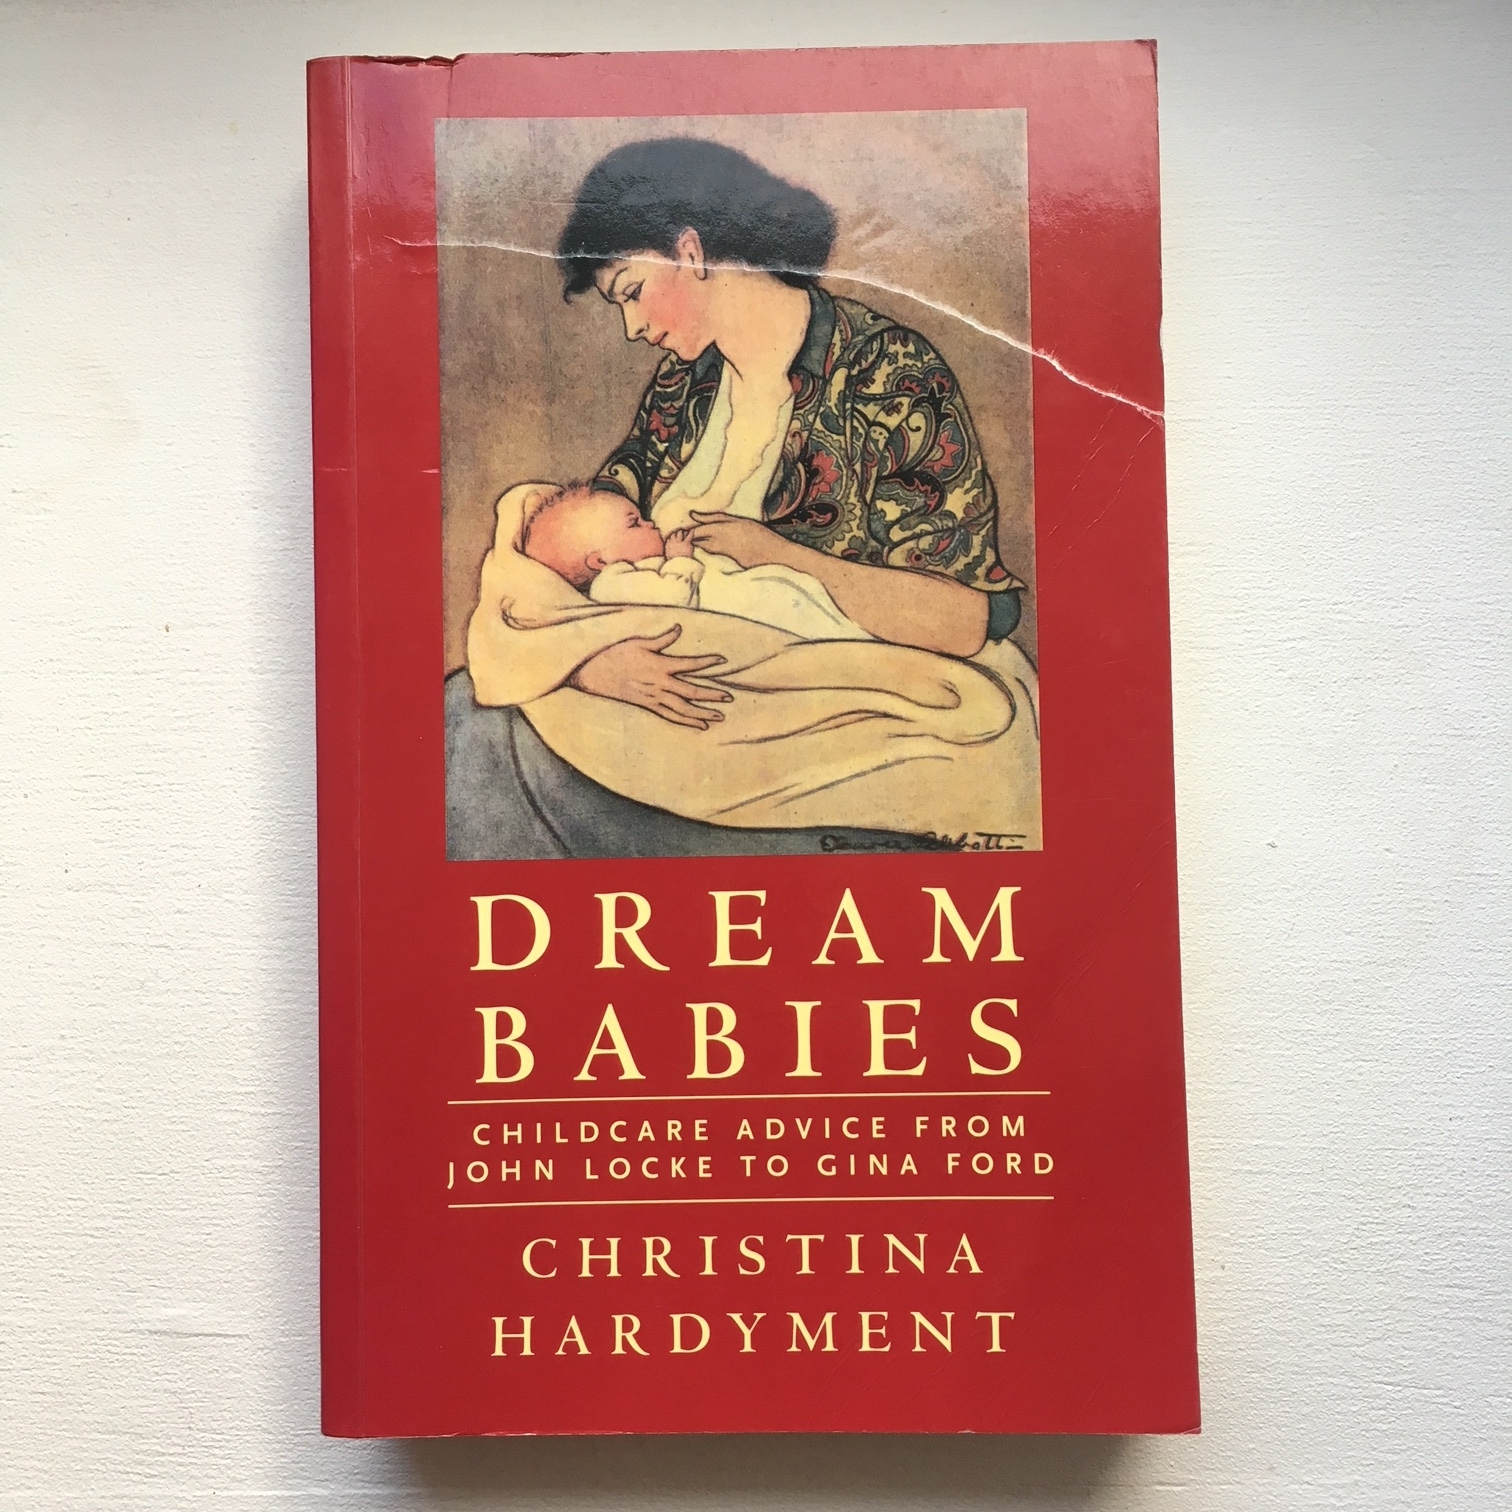 Dream Babies - Christina Hardyment    This is a fascinating look at how childcare advice has changed through the ages.  If you are struggling to find your own way as a parent, and feel bombarded with different approaches, this might be a bit of an antidote as it shows how varied (and at times contradictory) different childcare approaches are.  Combined with 'The Psychology of Babies', this can be really helpful in learning to trust in the relationship between you and your baby.